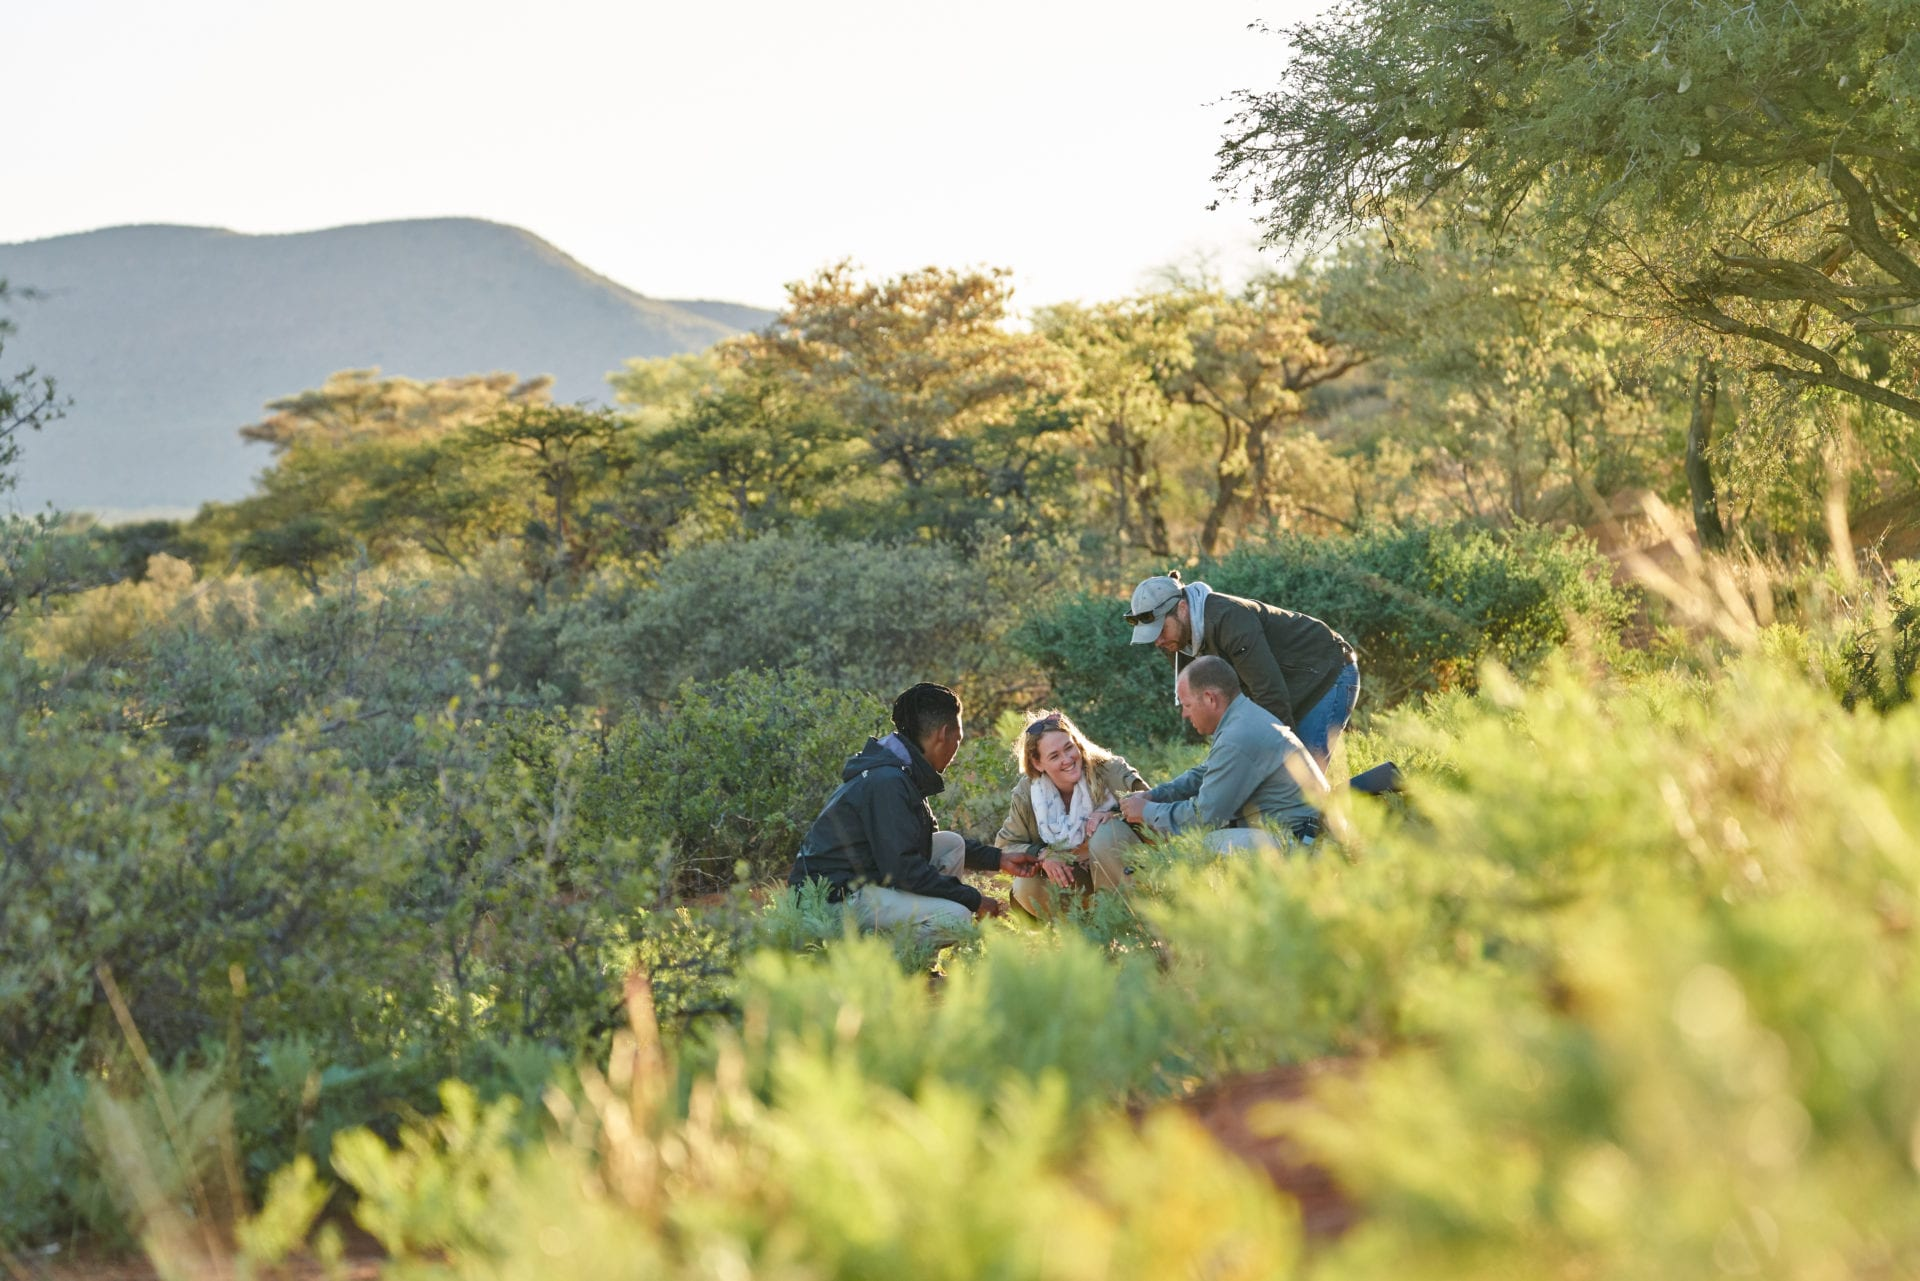 Ecological Research. Conservation management